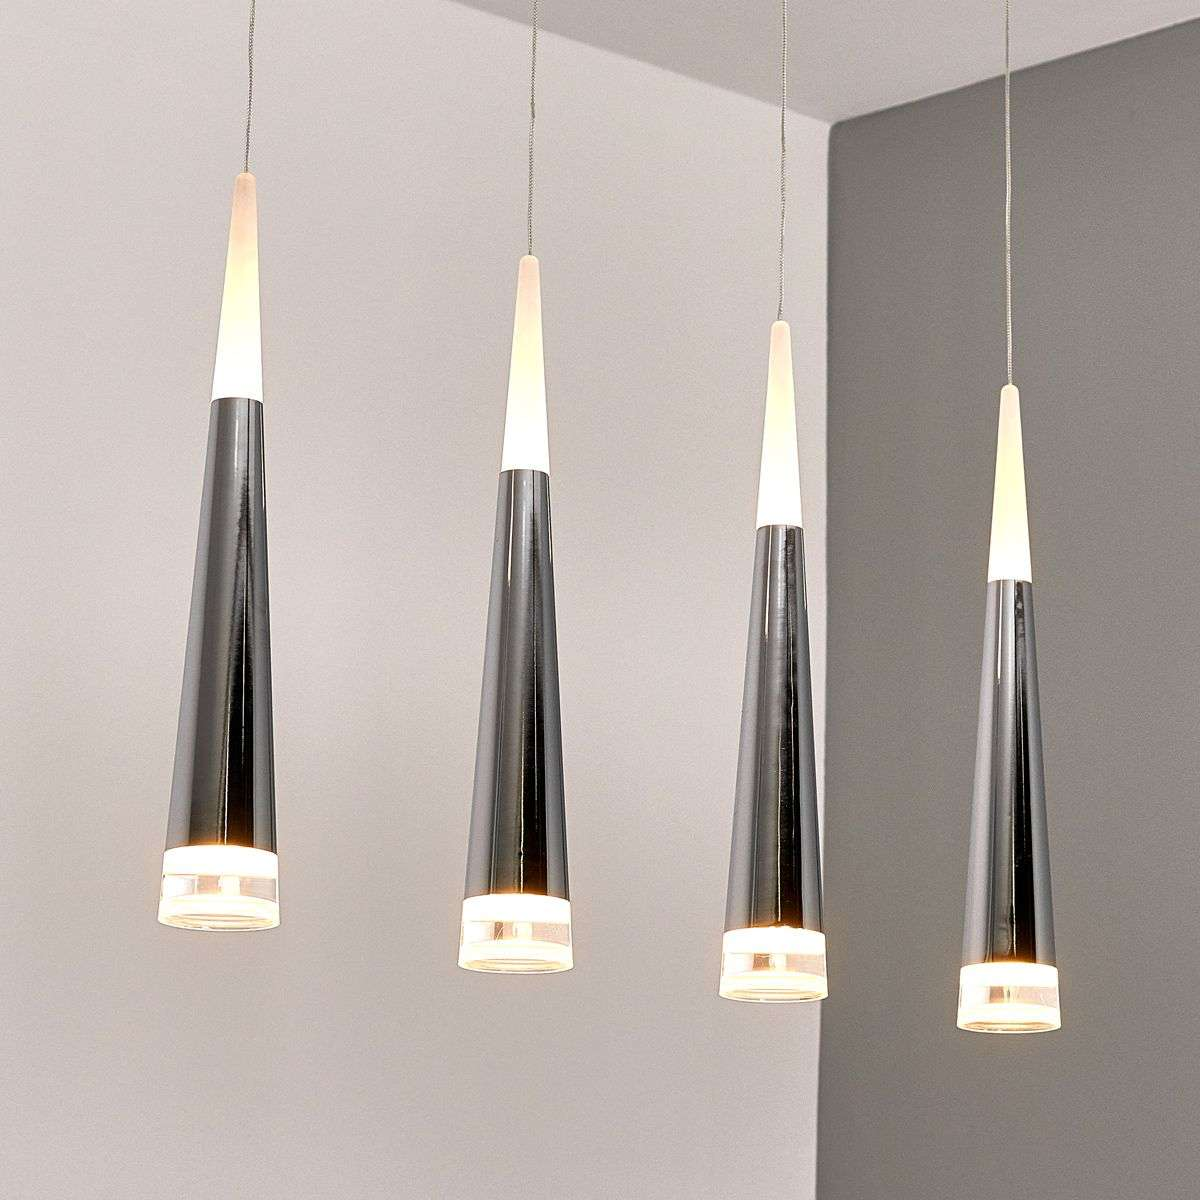 Suspension LED à quatre lampes Janne-9987052-36